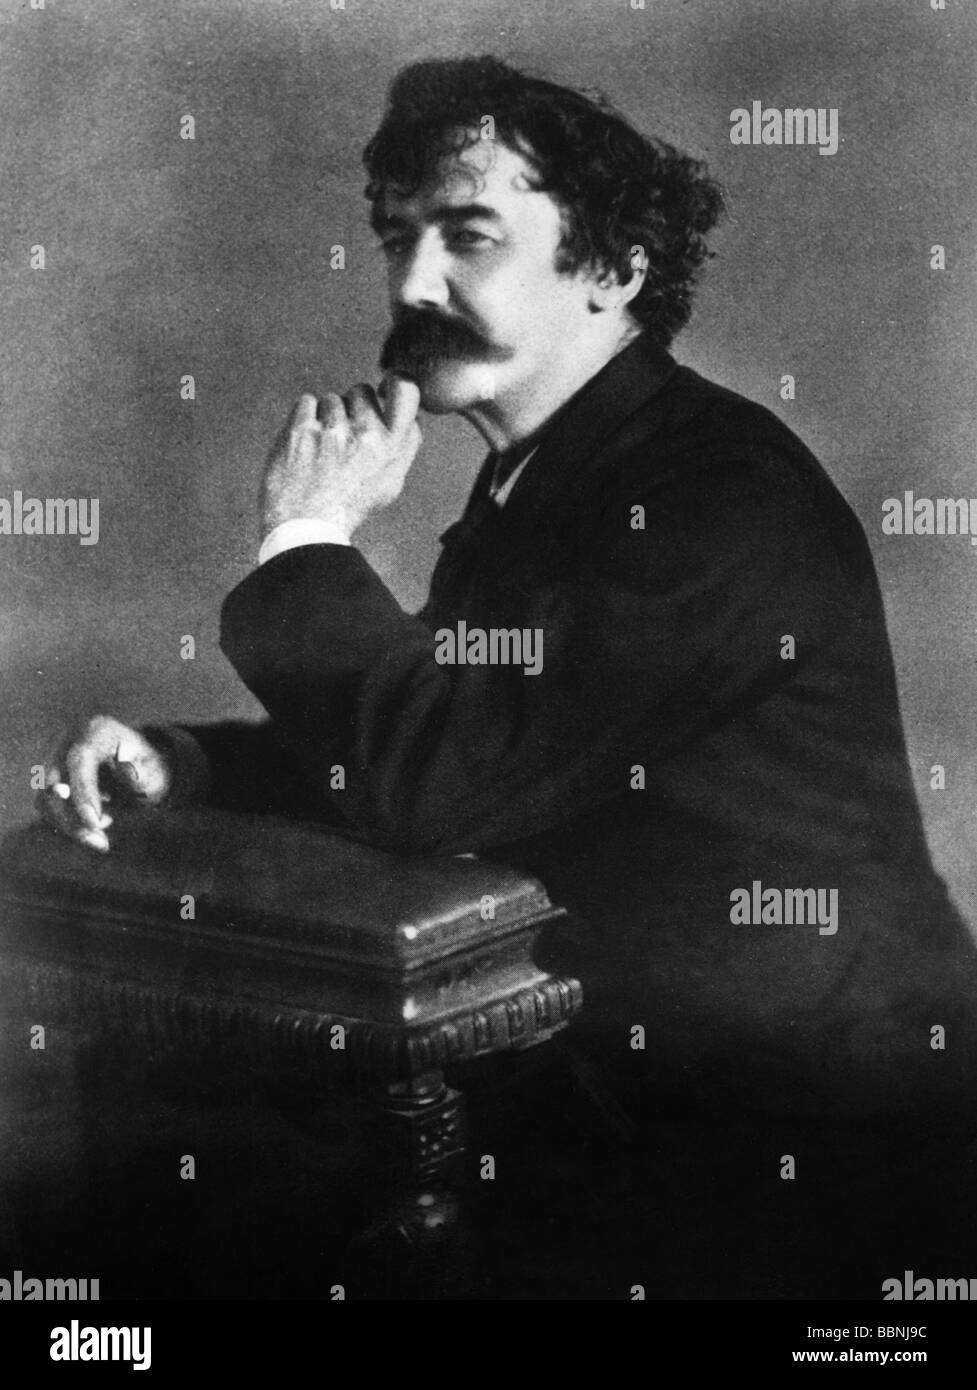 Whistler, James Abbot McNeill, 10.7.1834 - 17.7.1903, US painter, photo, 19th century, Additional-Rights-Clearances - Stock Image